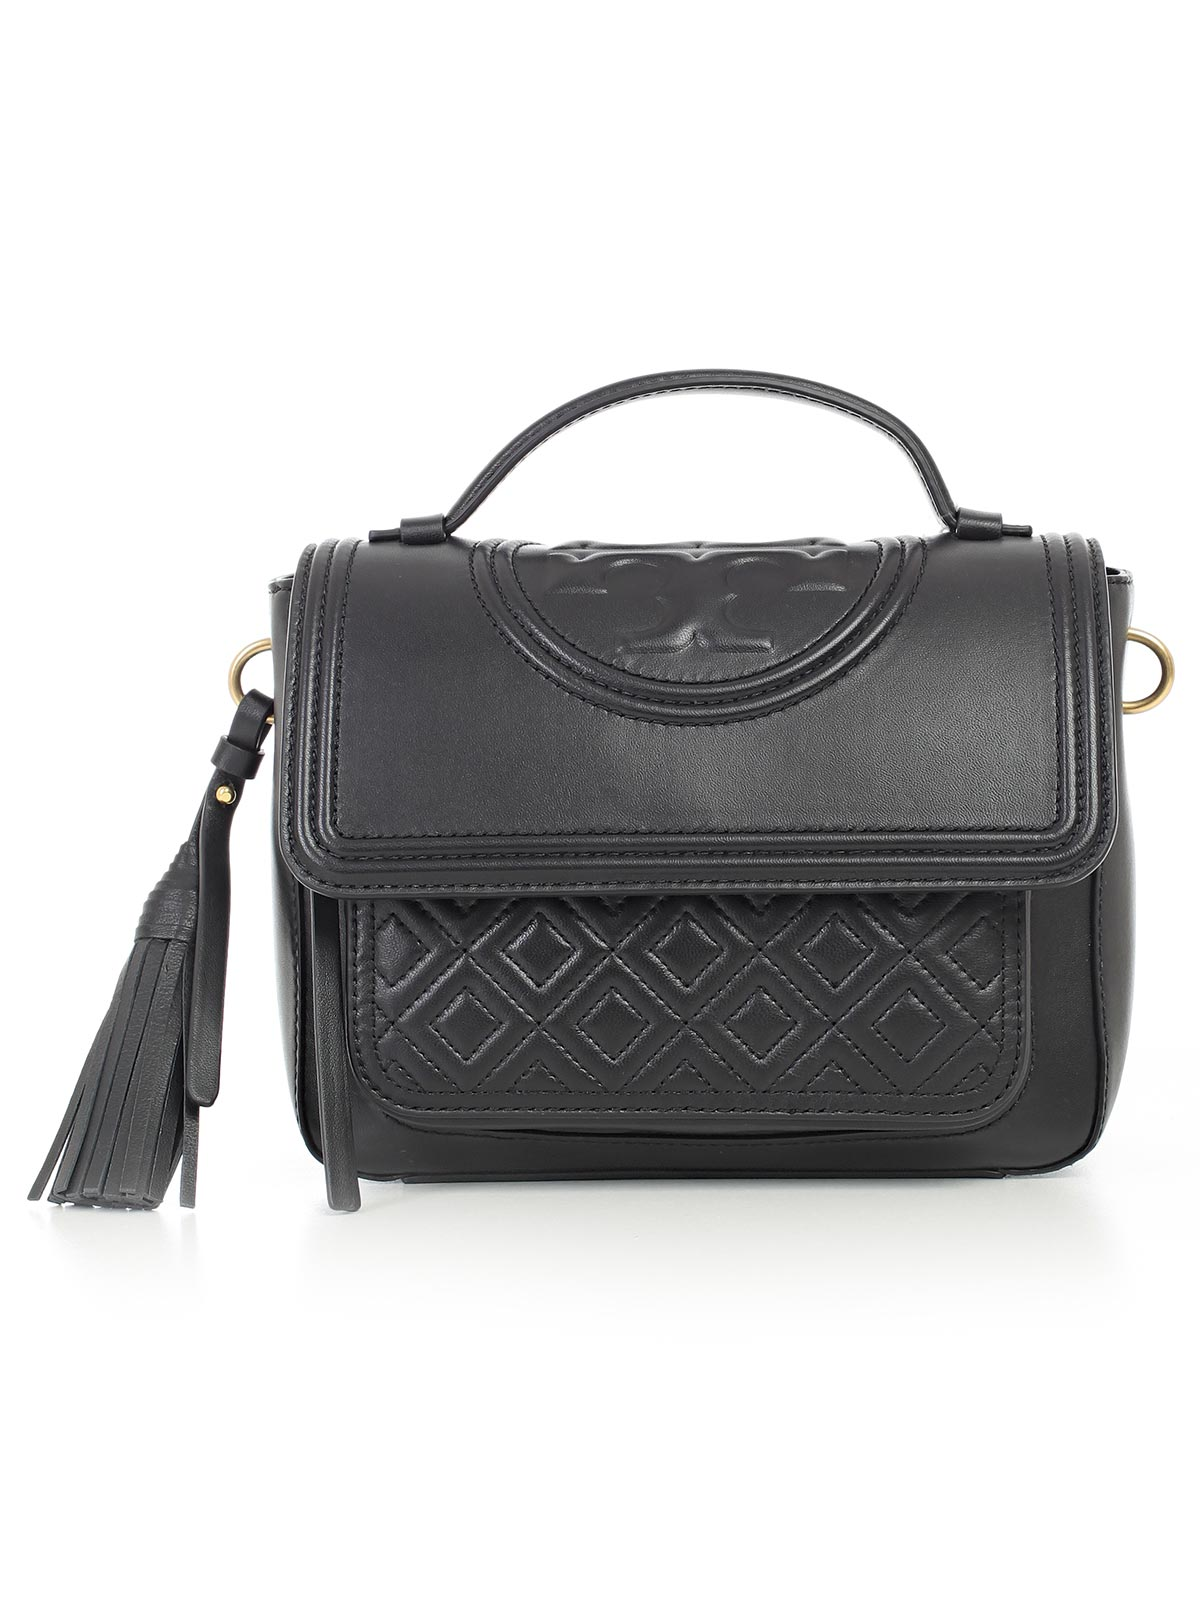 Picture of TORY BURCH Totes